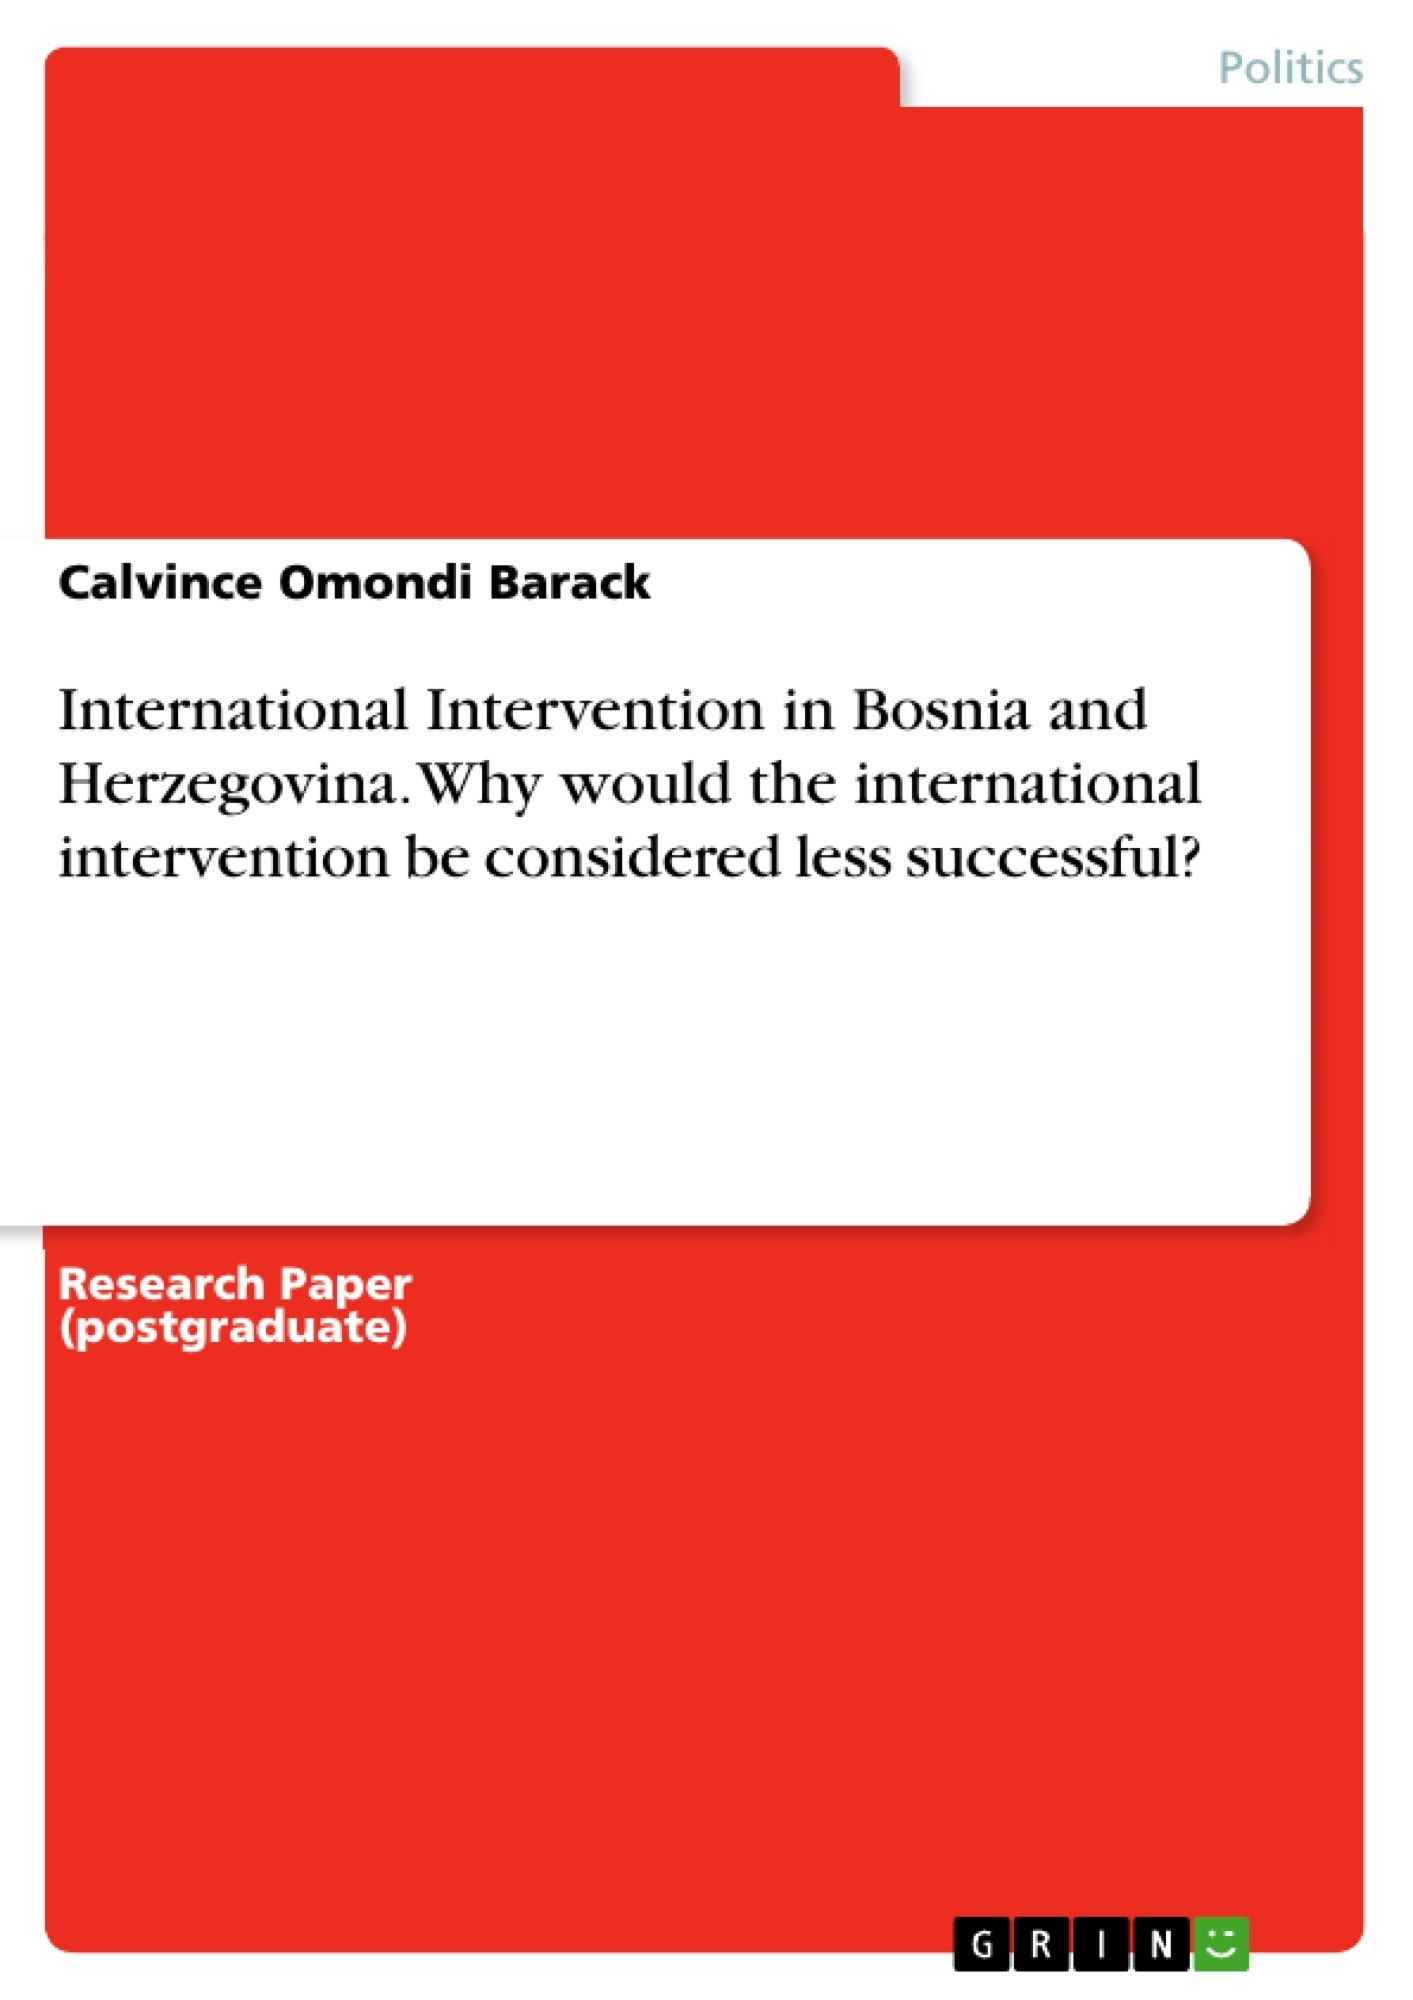 Title: International Intervention in Bosnia and Herzegovina. Why would the international intervention be considered less successful?